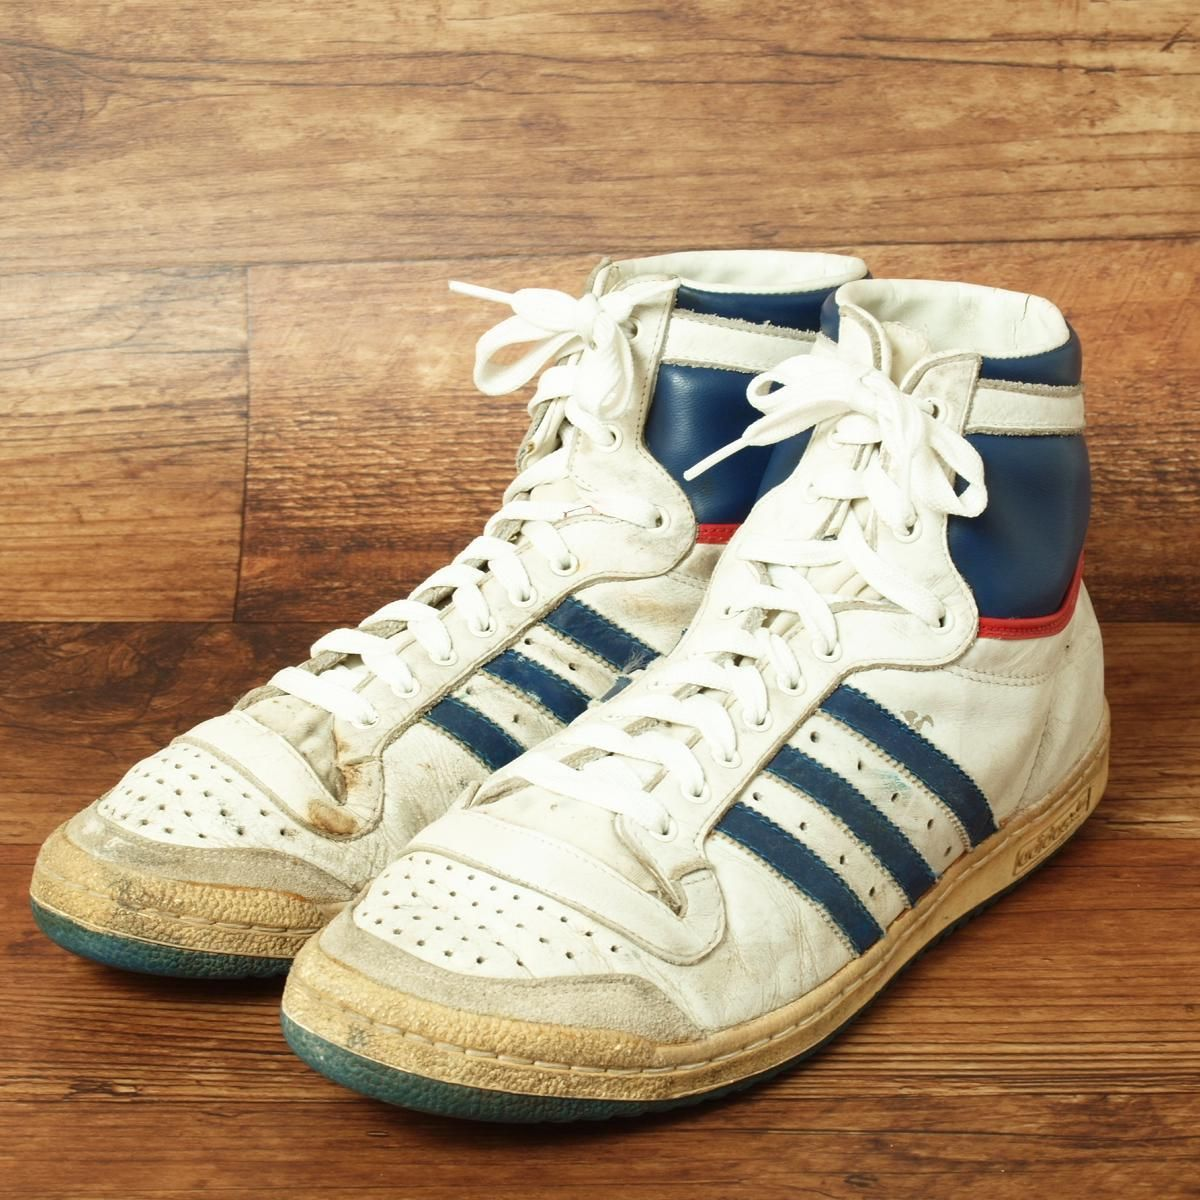 Adidas Top Ten Rick Barry 1979